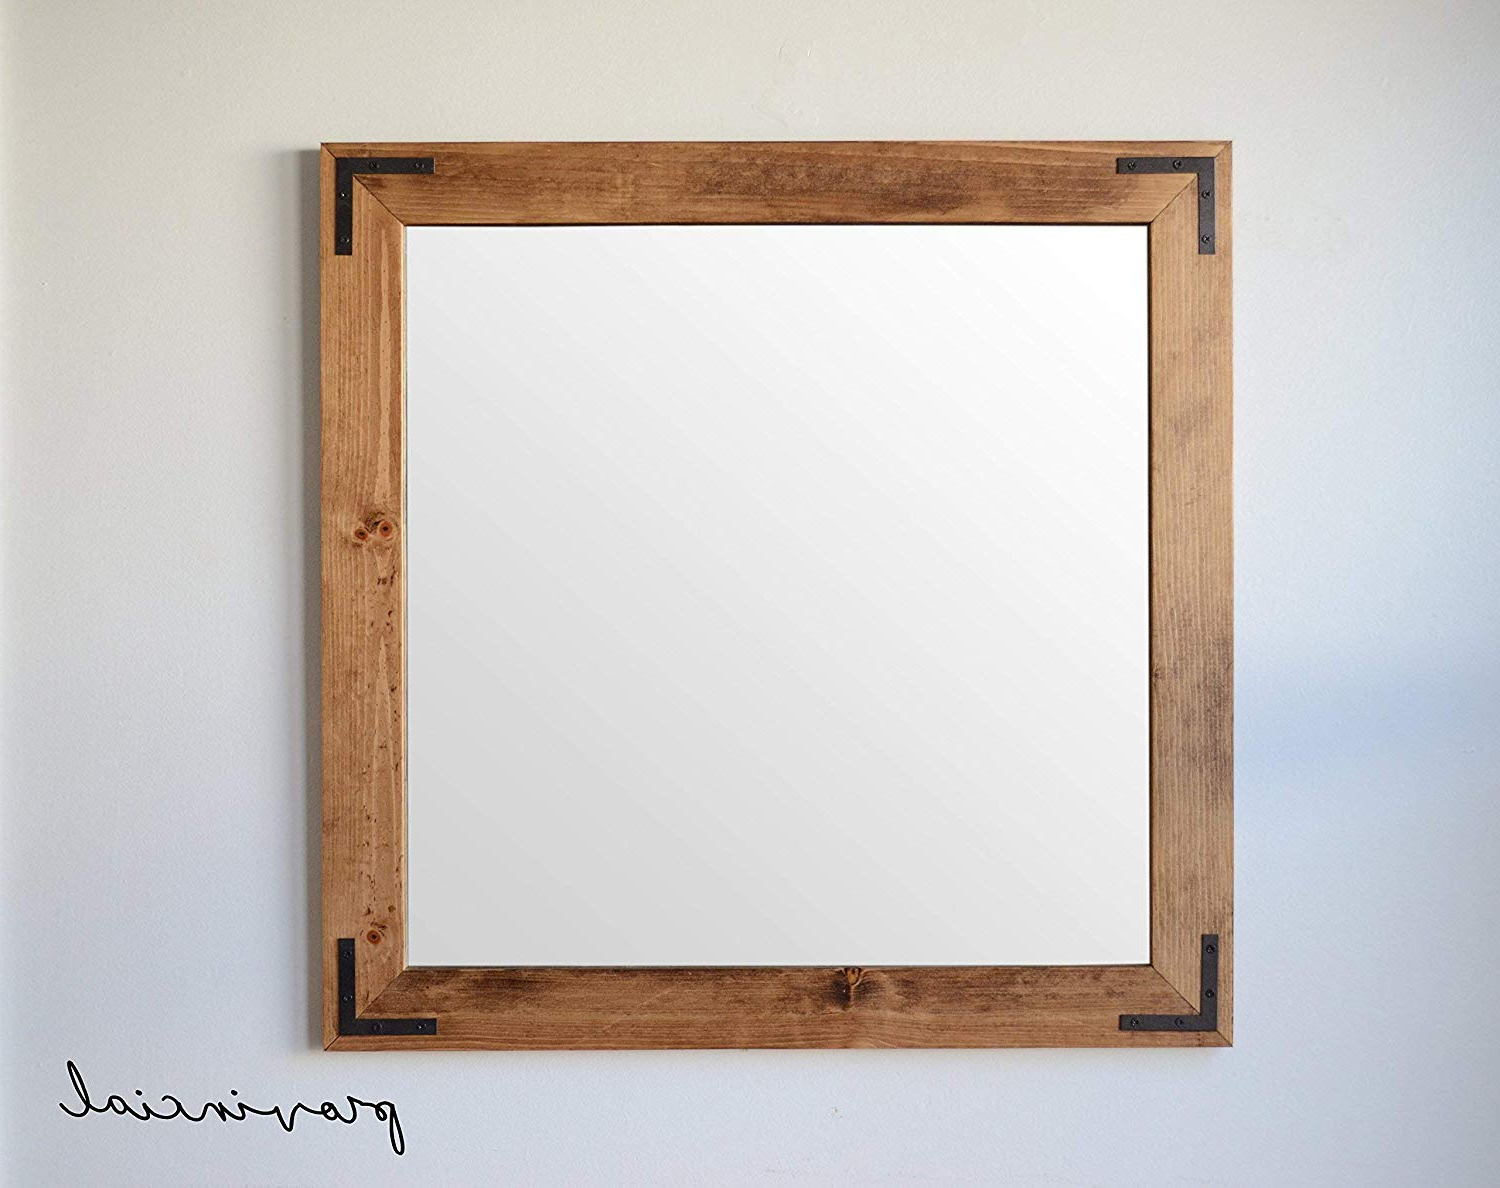 Wooden Wall Mirrors Inside Current Amazon: Rustic Wooden Wall Mirror W/corner Brackets (View 3 of 20)